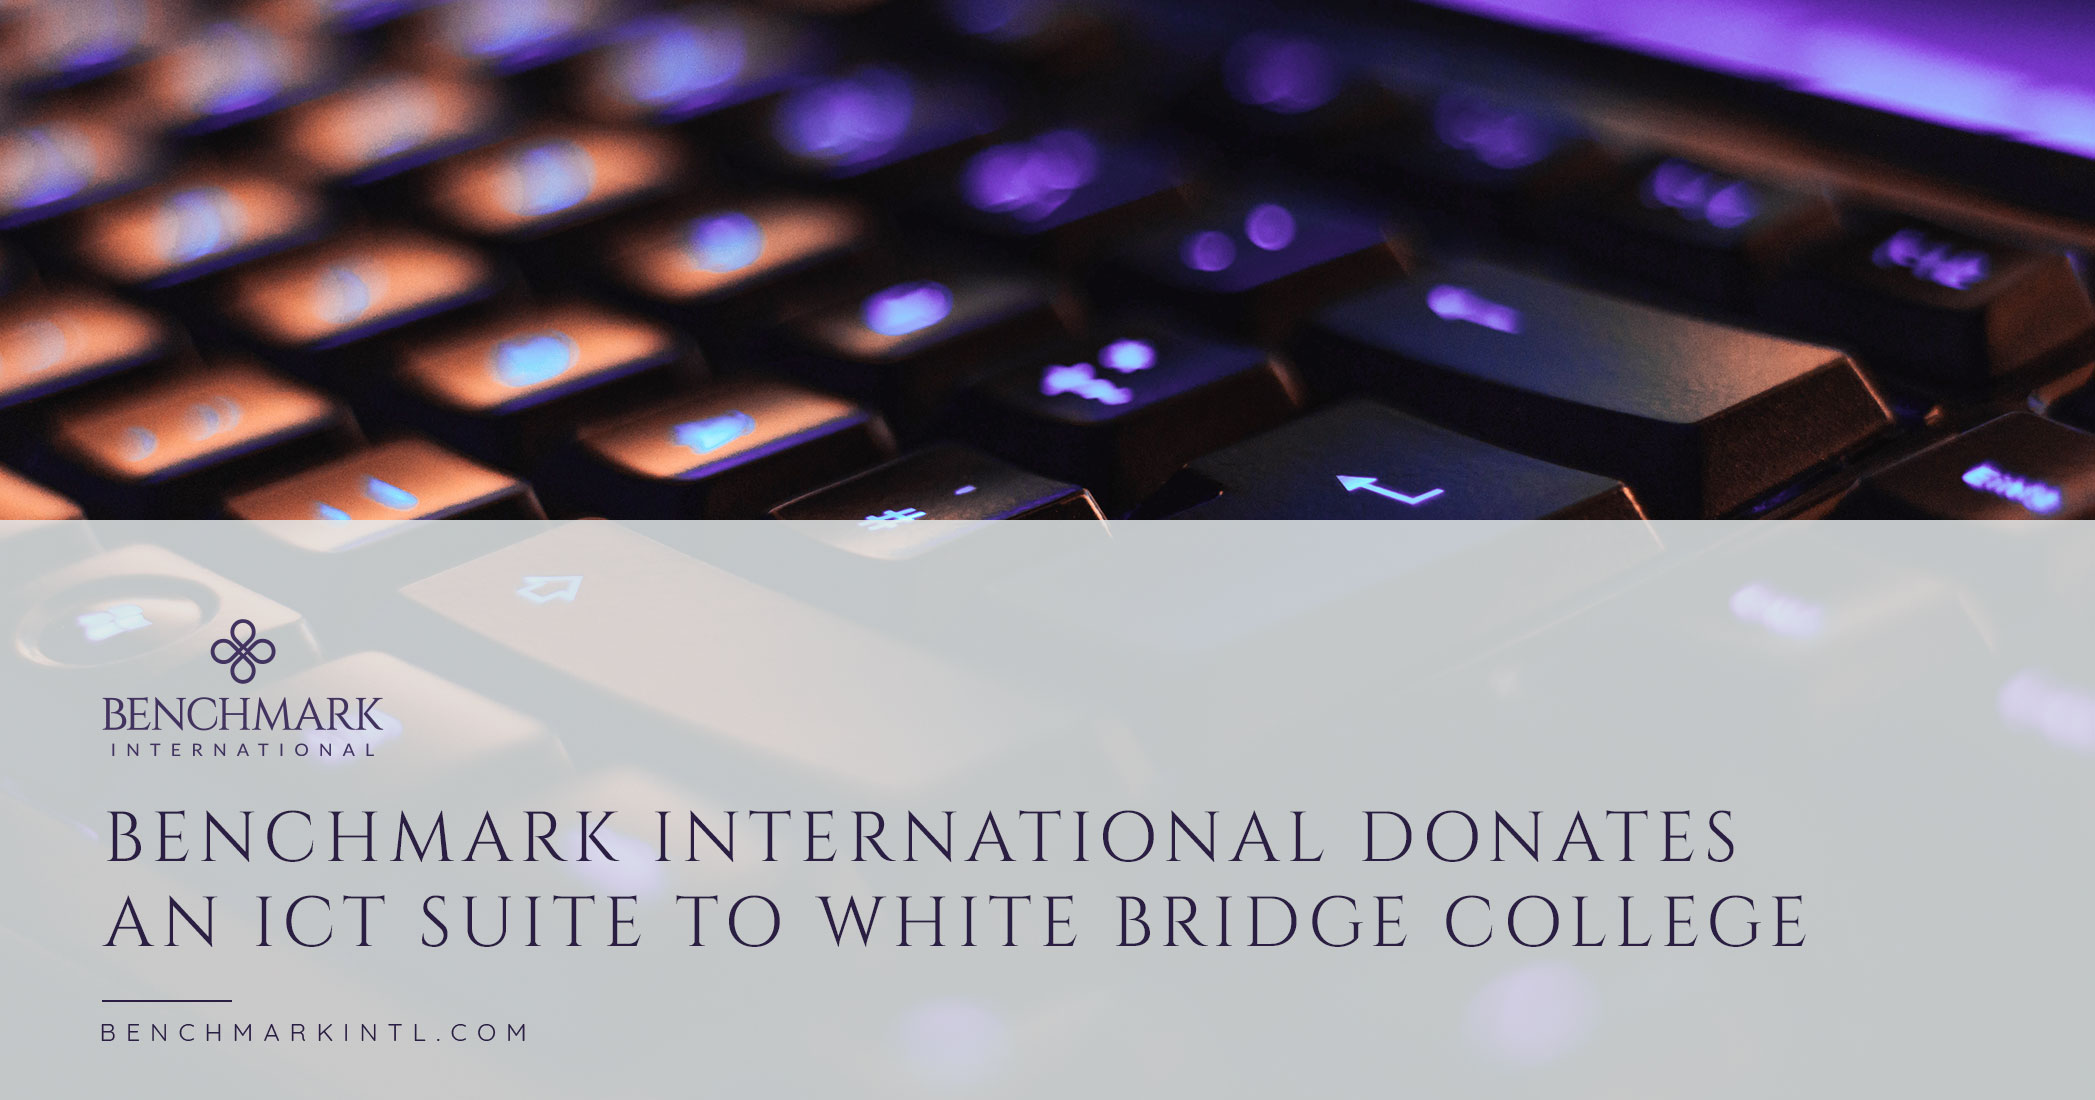 Benchmark International Donates an ICT Suite to White Bridge College